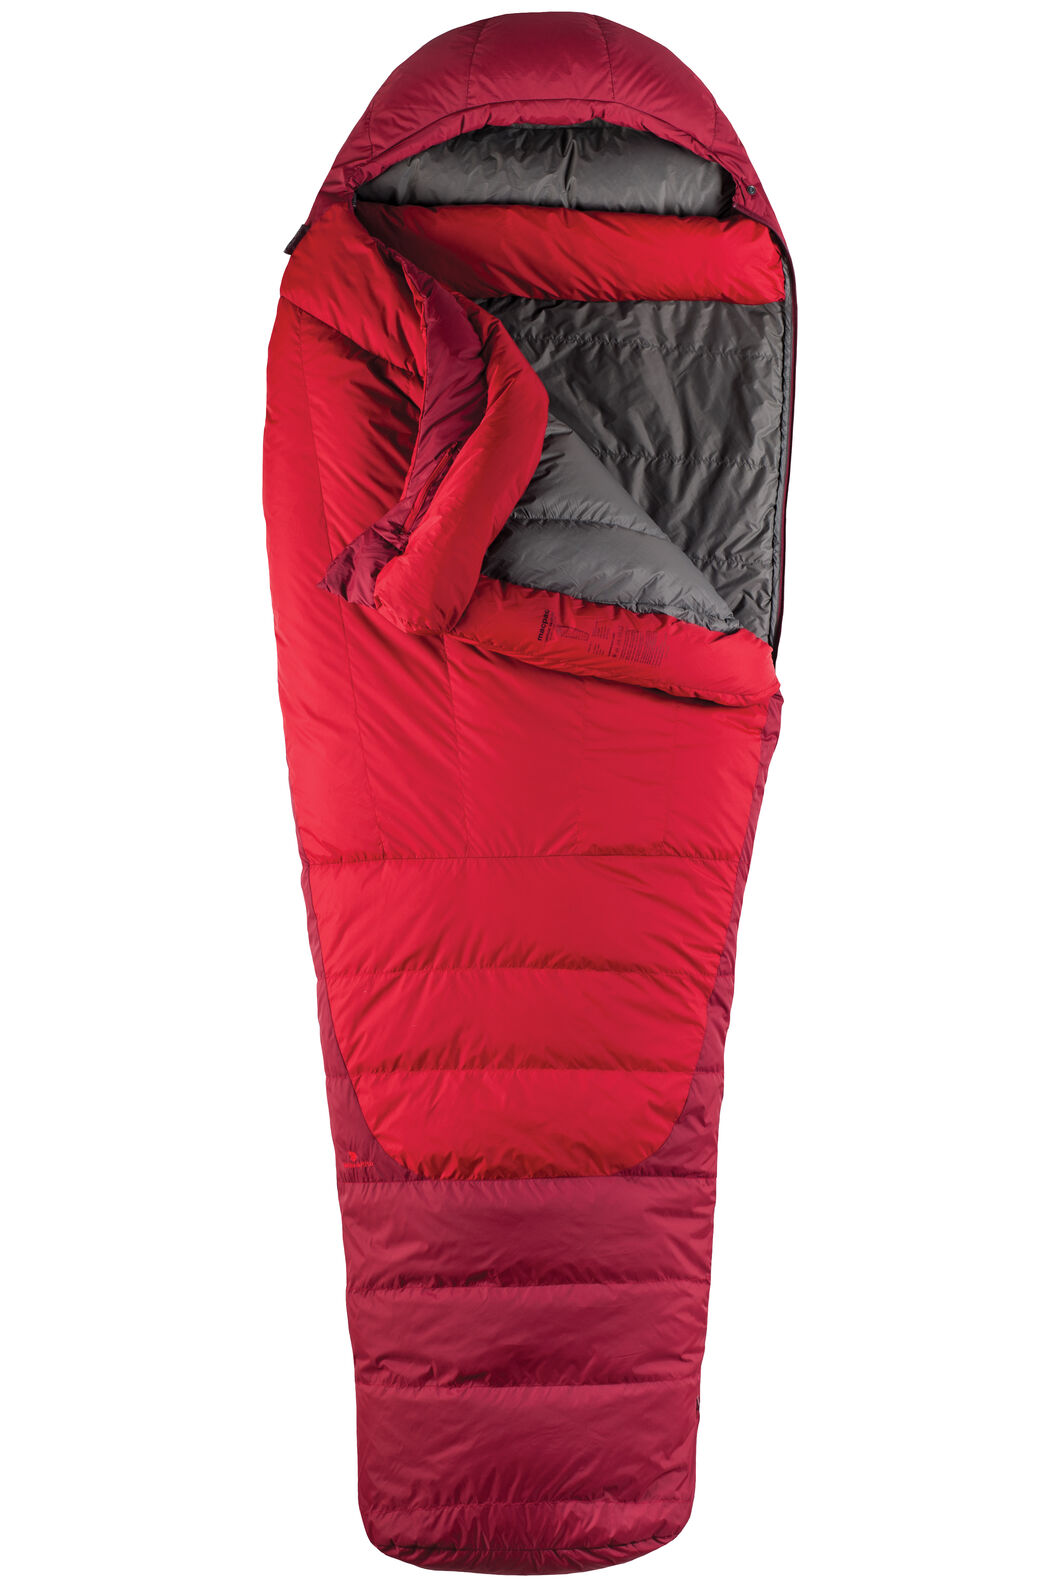 Macpac Latitude XP Goose Down 700 Sleeping Bag - Standard, Chilli, hi-res